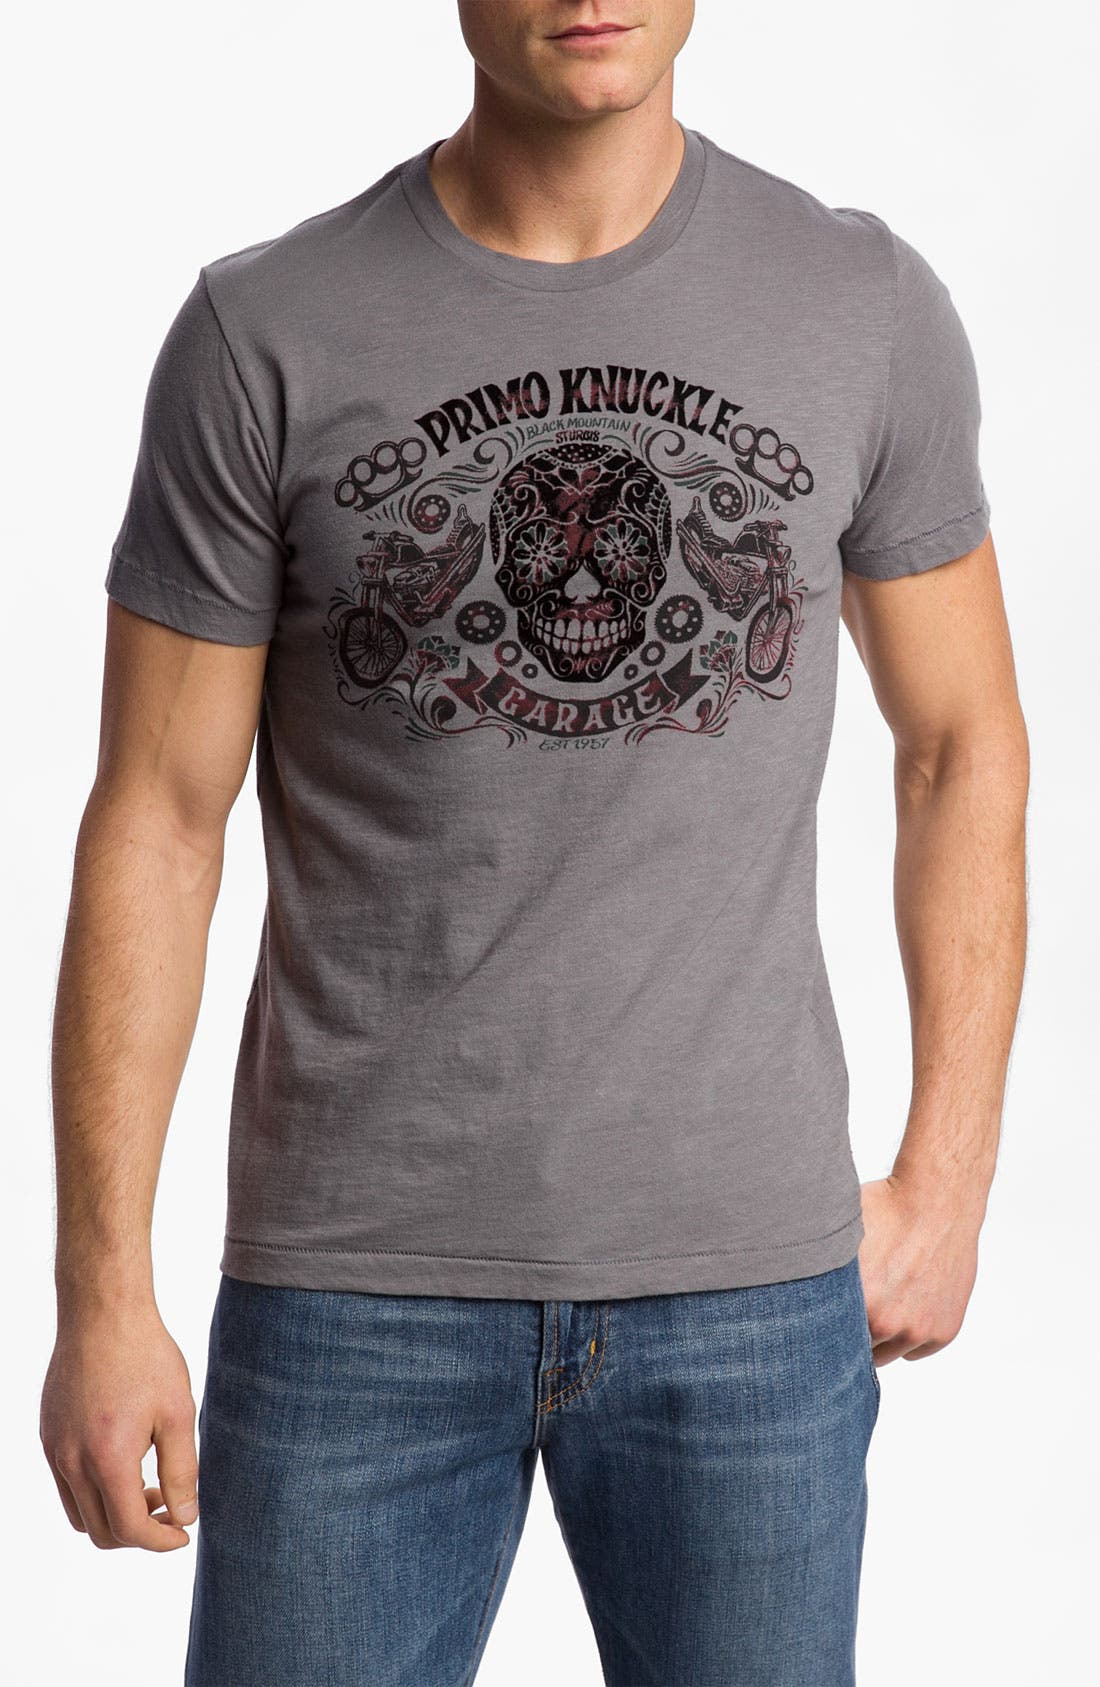 Alternate Image 1 Selected - Lucky Brand 'Primo Knuckle' T-Shirt